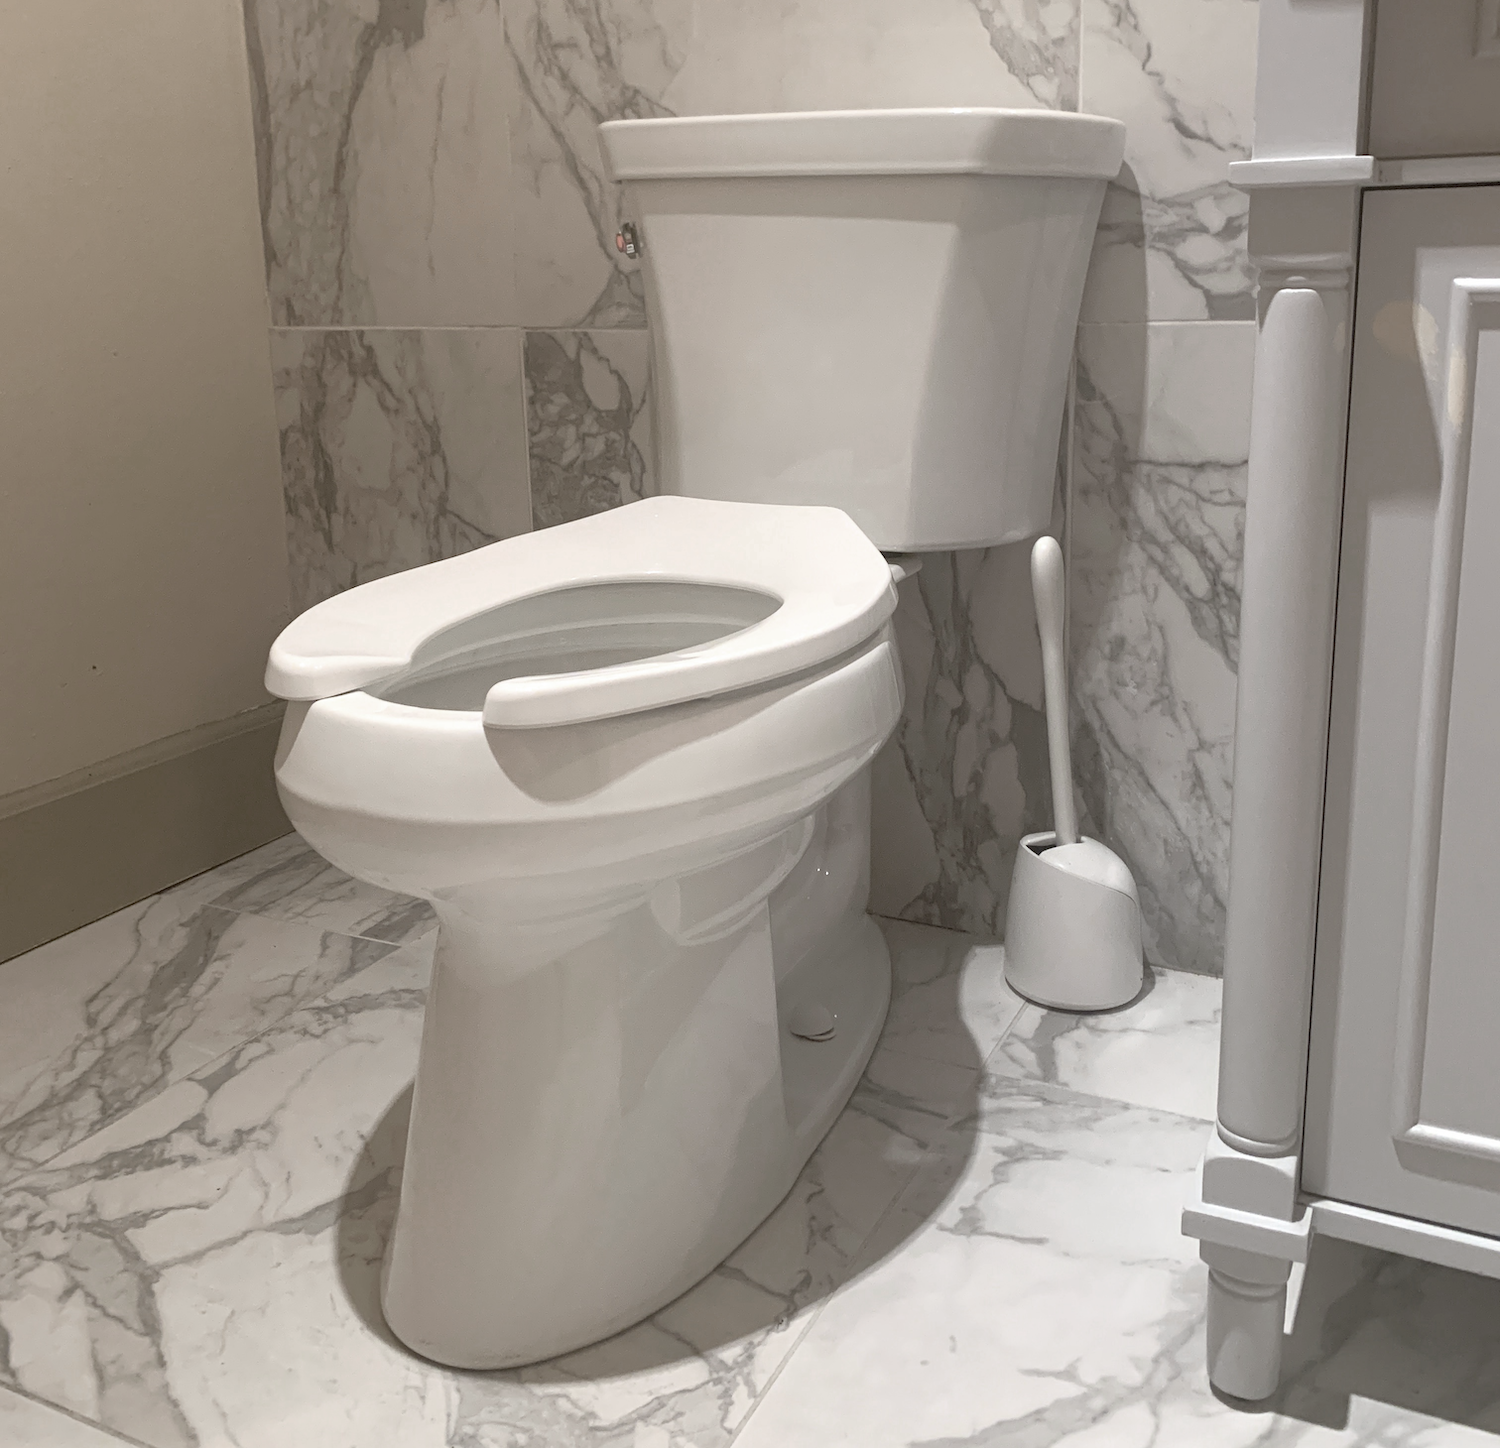 Toilet in Bathroom with Marble Floor and Walls